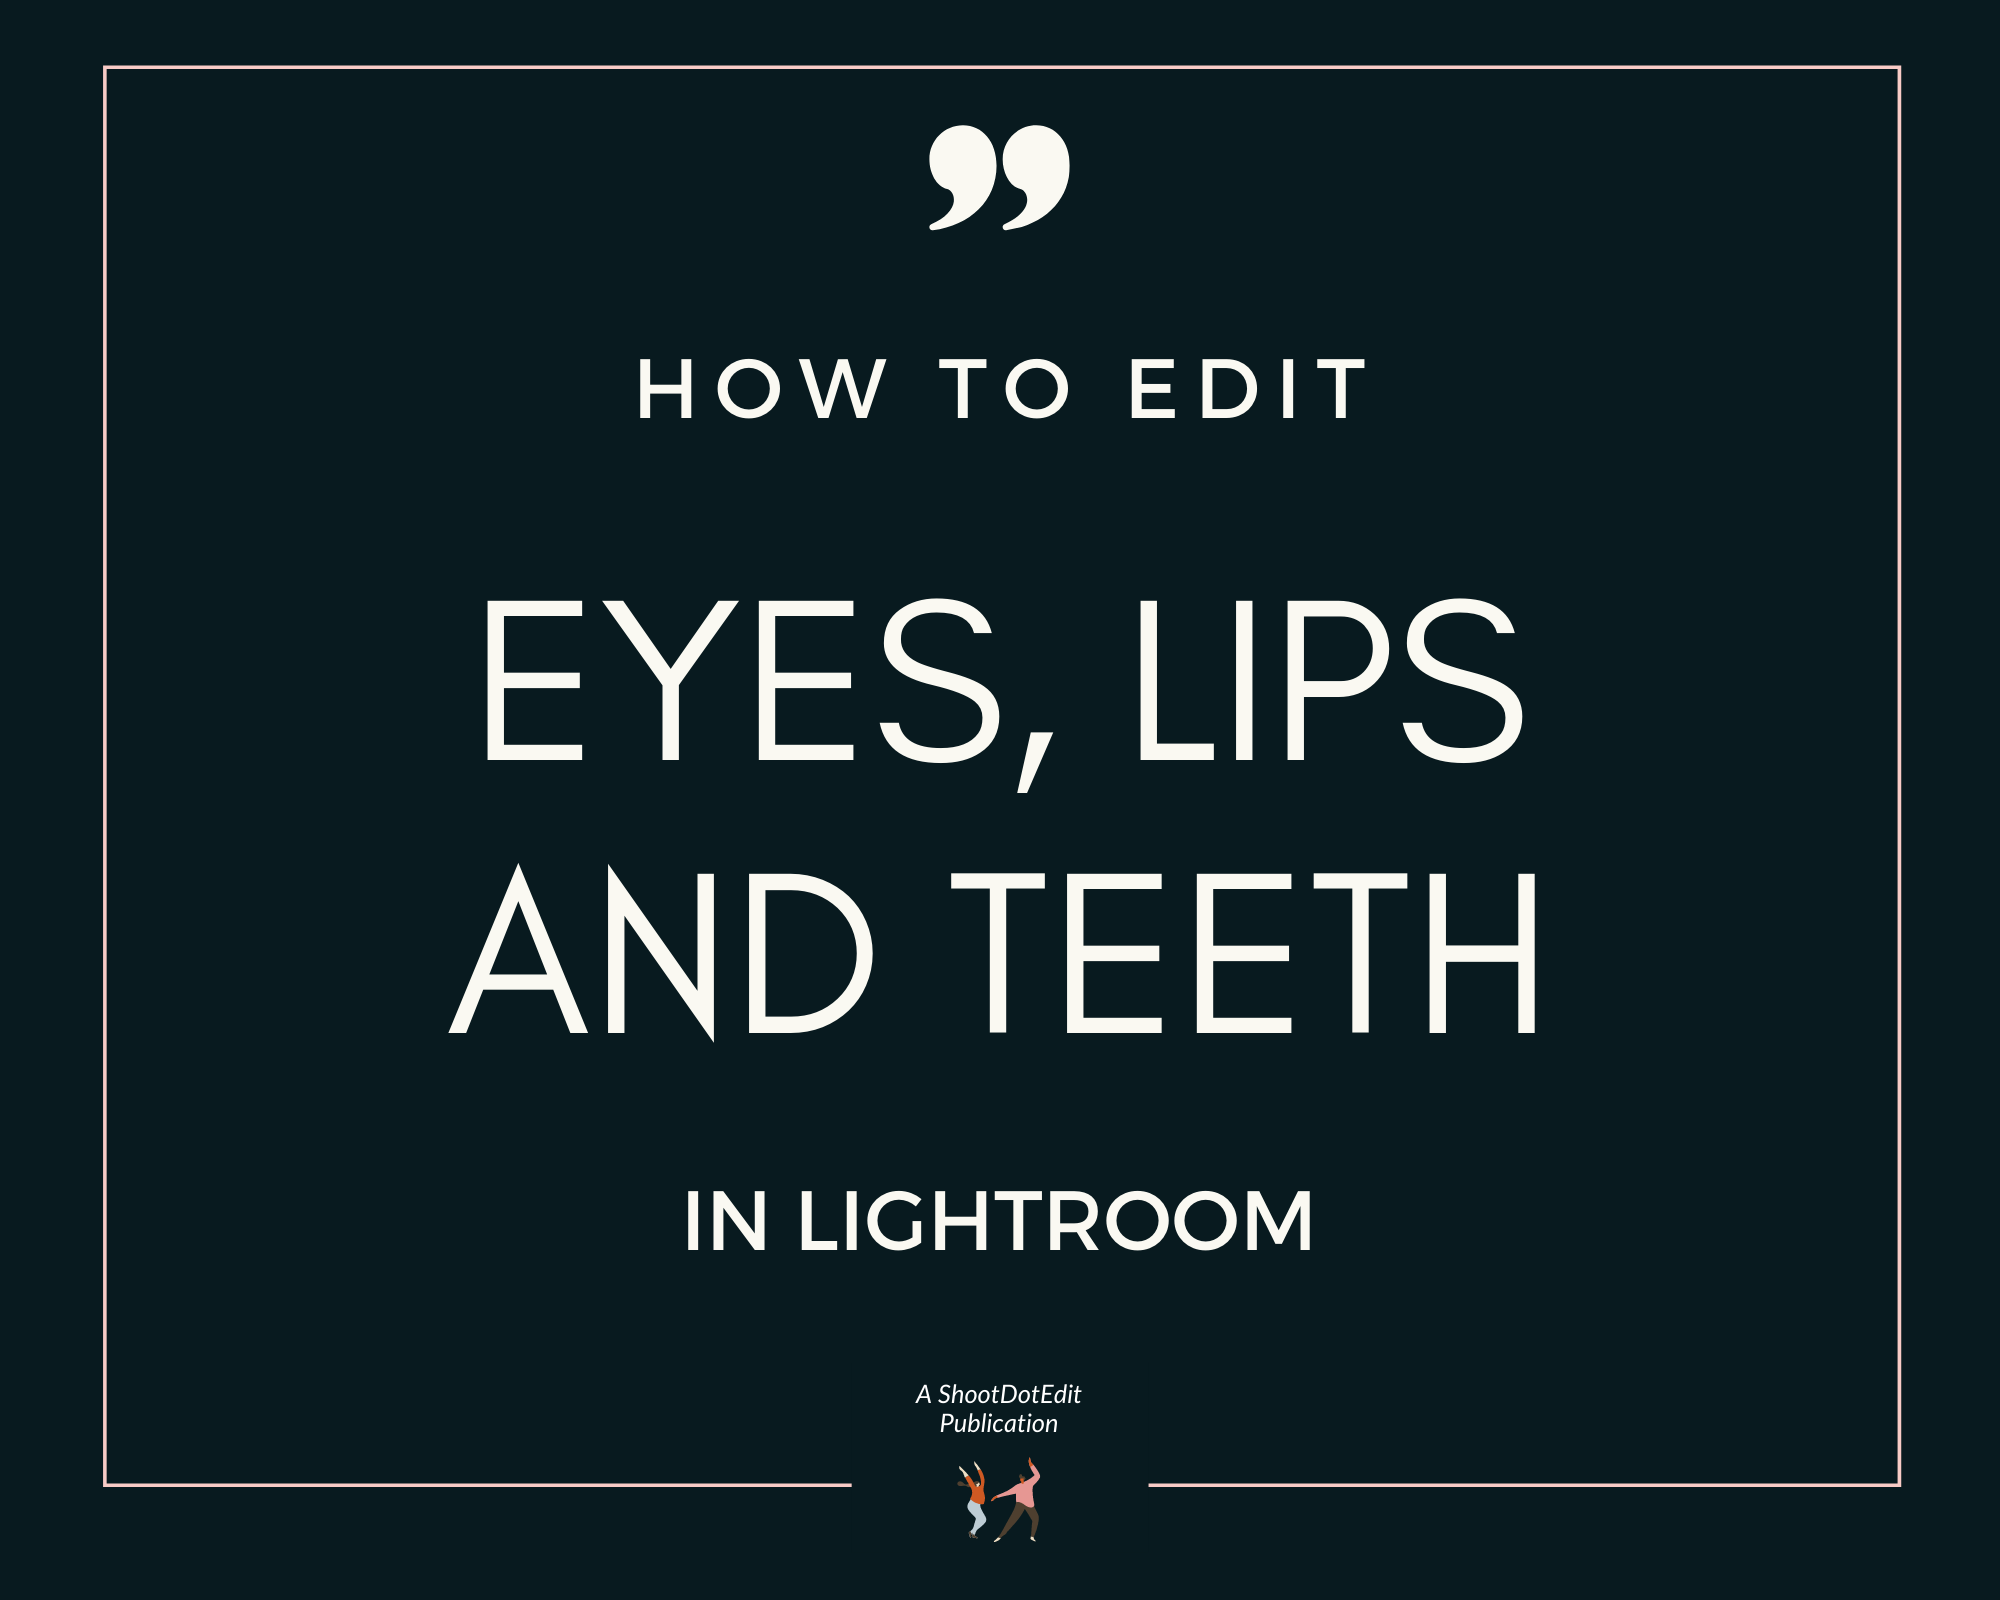 Infographic stating how to edit eyes, lips, and teeth in Lightroom